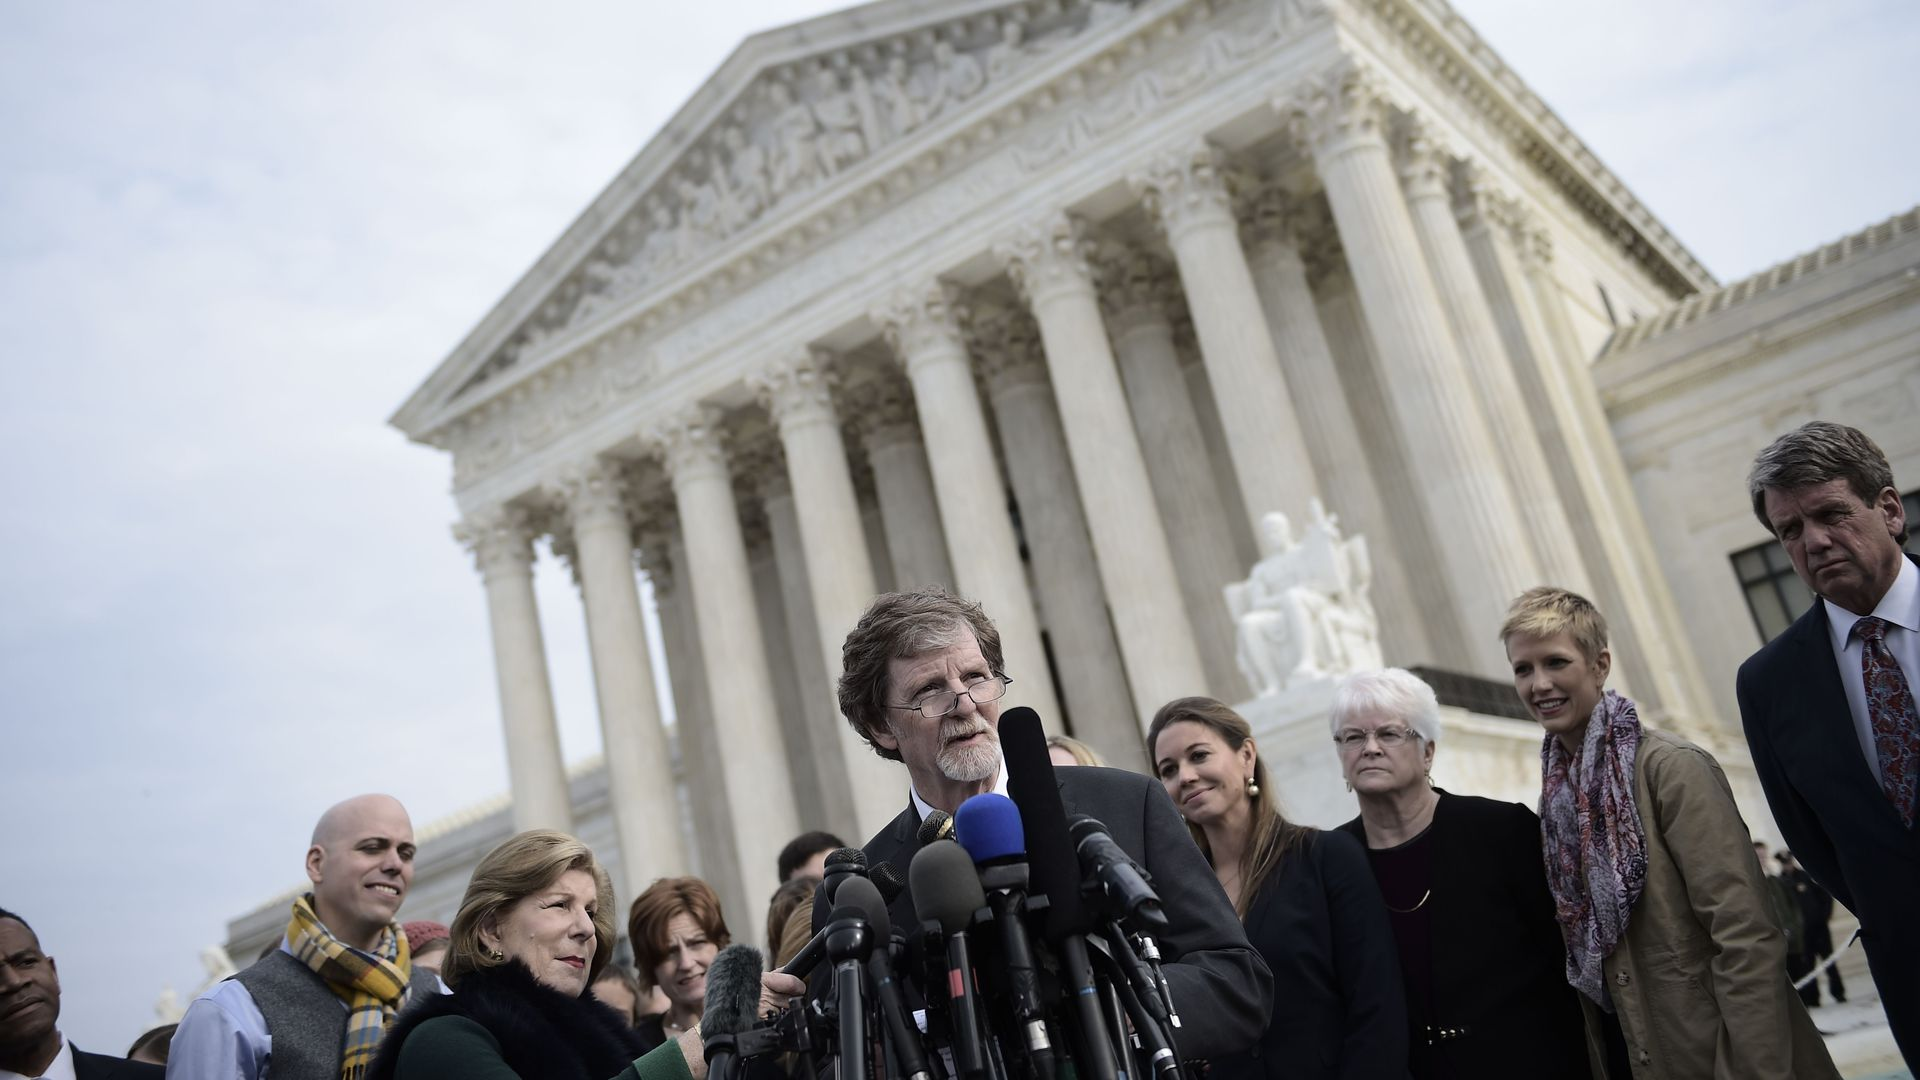 Jack Phillips, owner of 'Masterpiece Cakeshop' in Colorado outside the U.S. Supreme Court. Photo: Brendan Smialowski/AFP/Getty Images